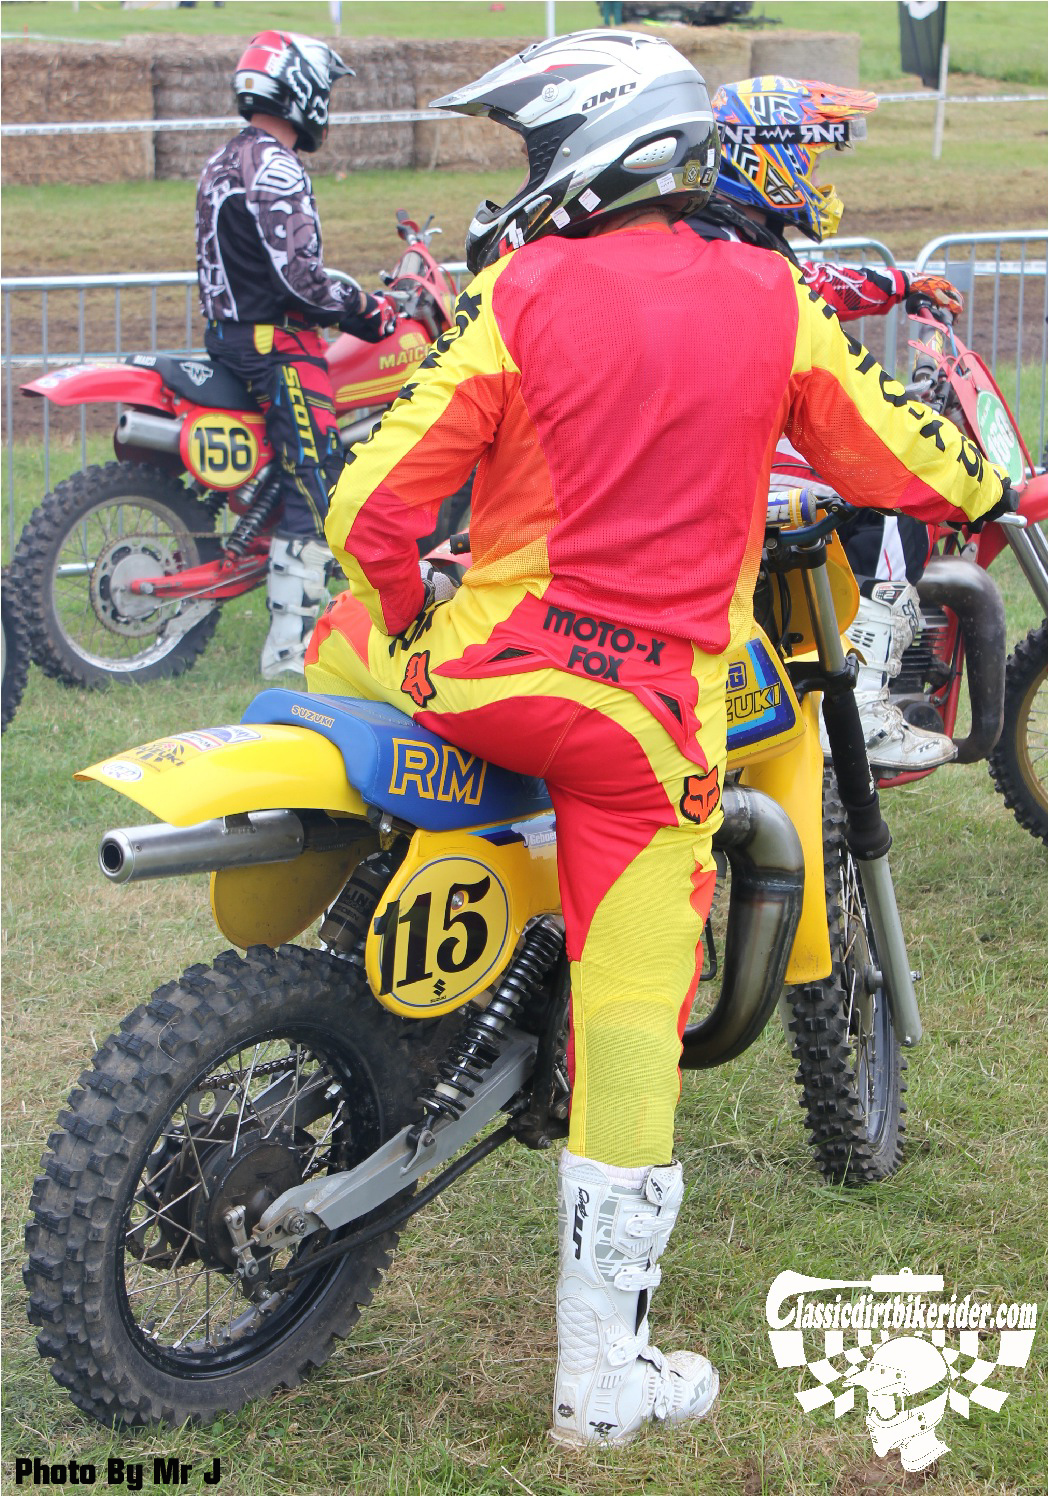 king of the castle 2015 photos Farleigh Castle twinshock motocross classicdirtbikerider.com 5